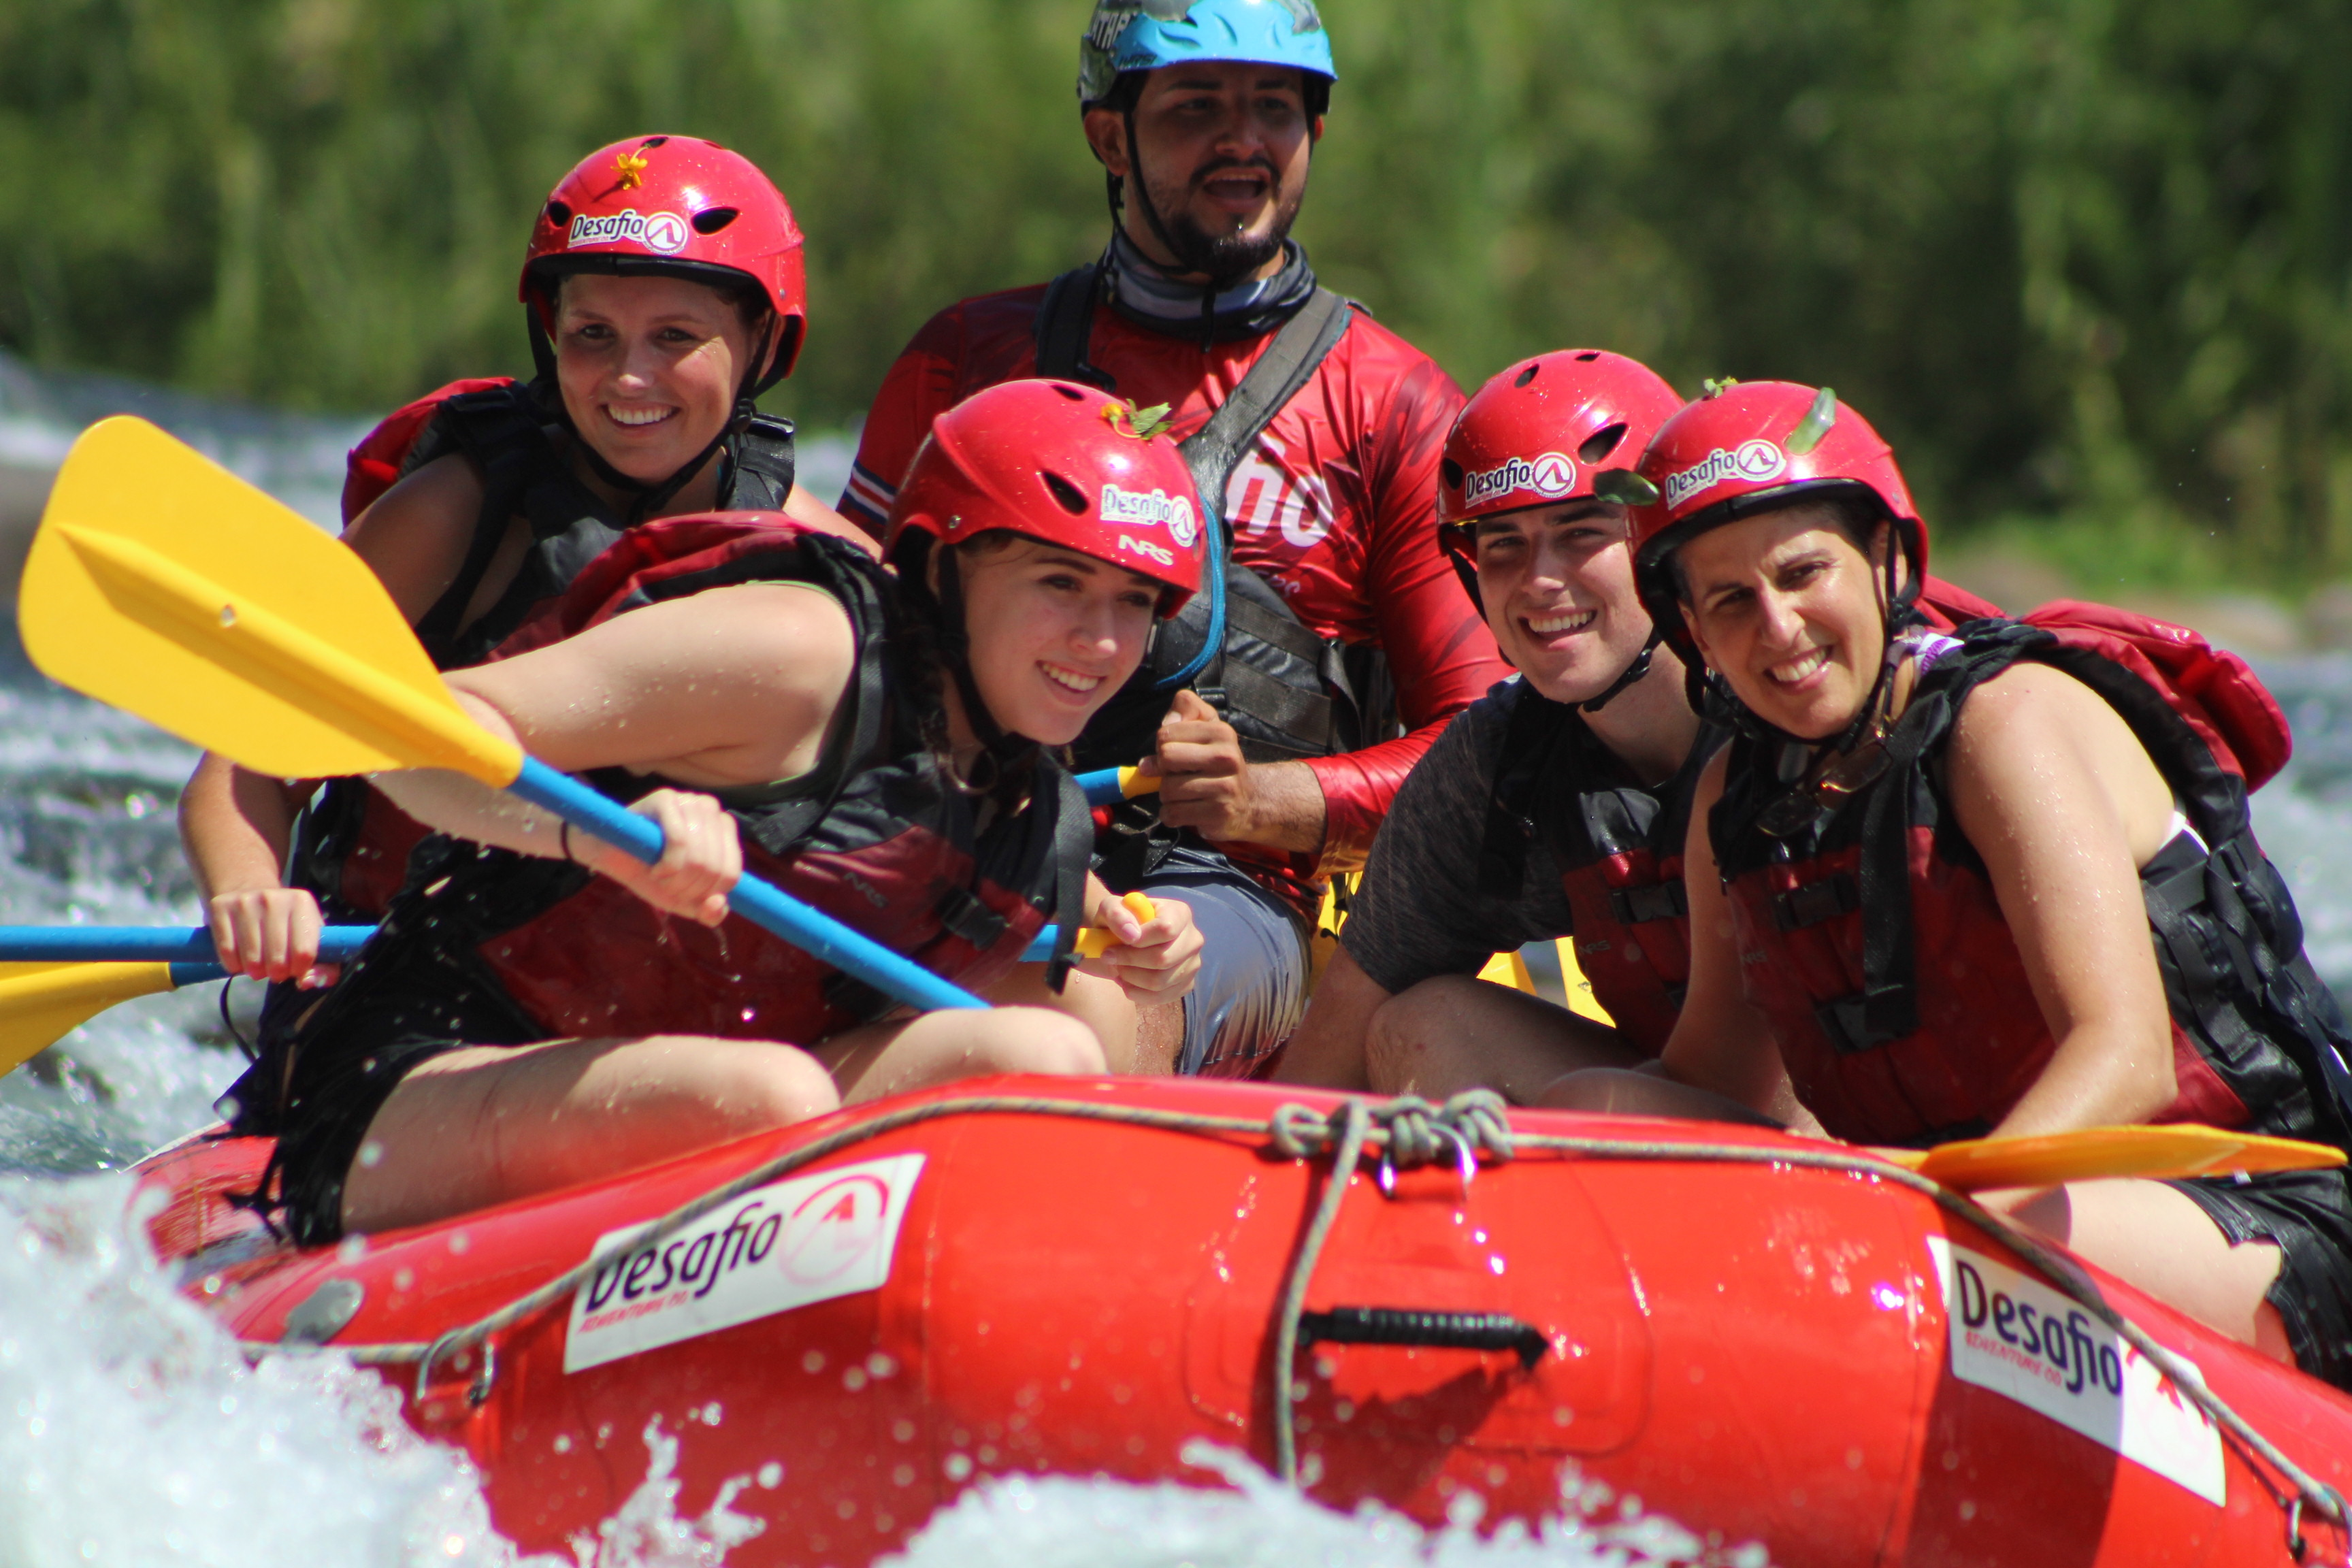 Enjoy rafting through the rainforest in your own private boat and personal guide!